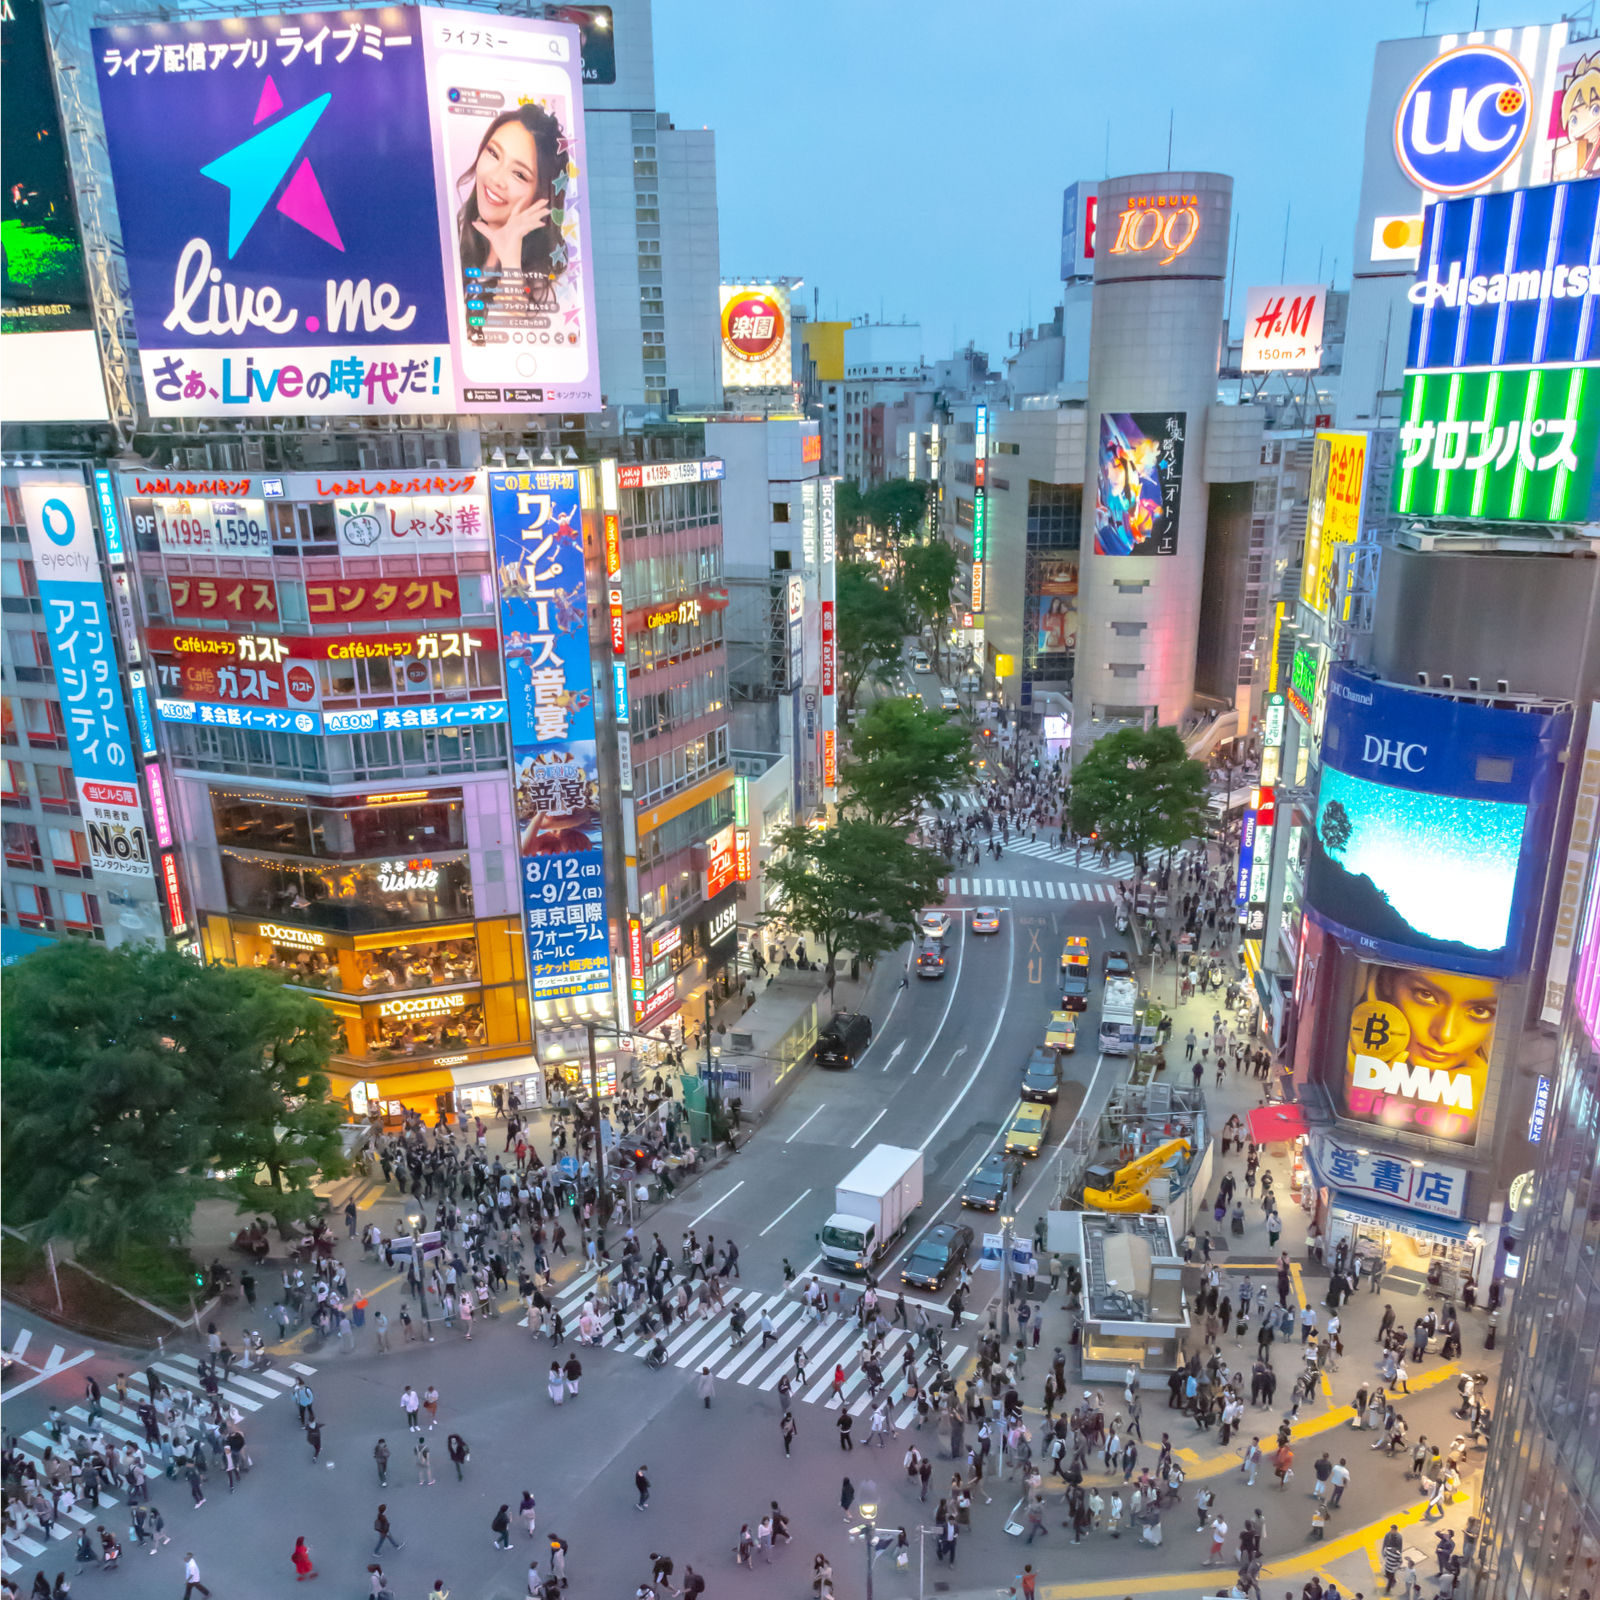 Crypto Hedge Fund Launches Retail Public Offering in Japan